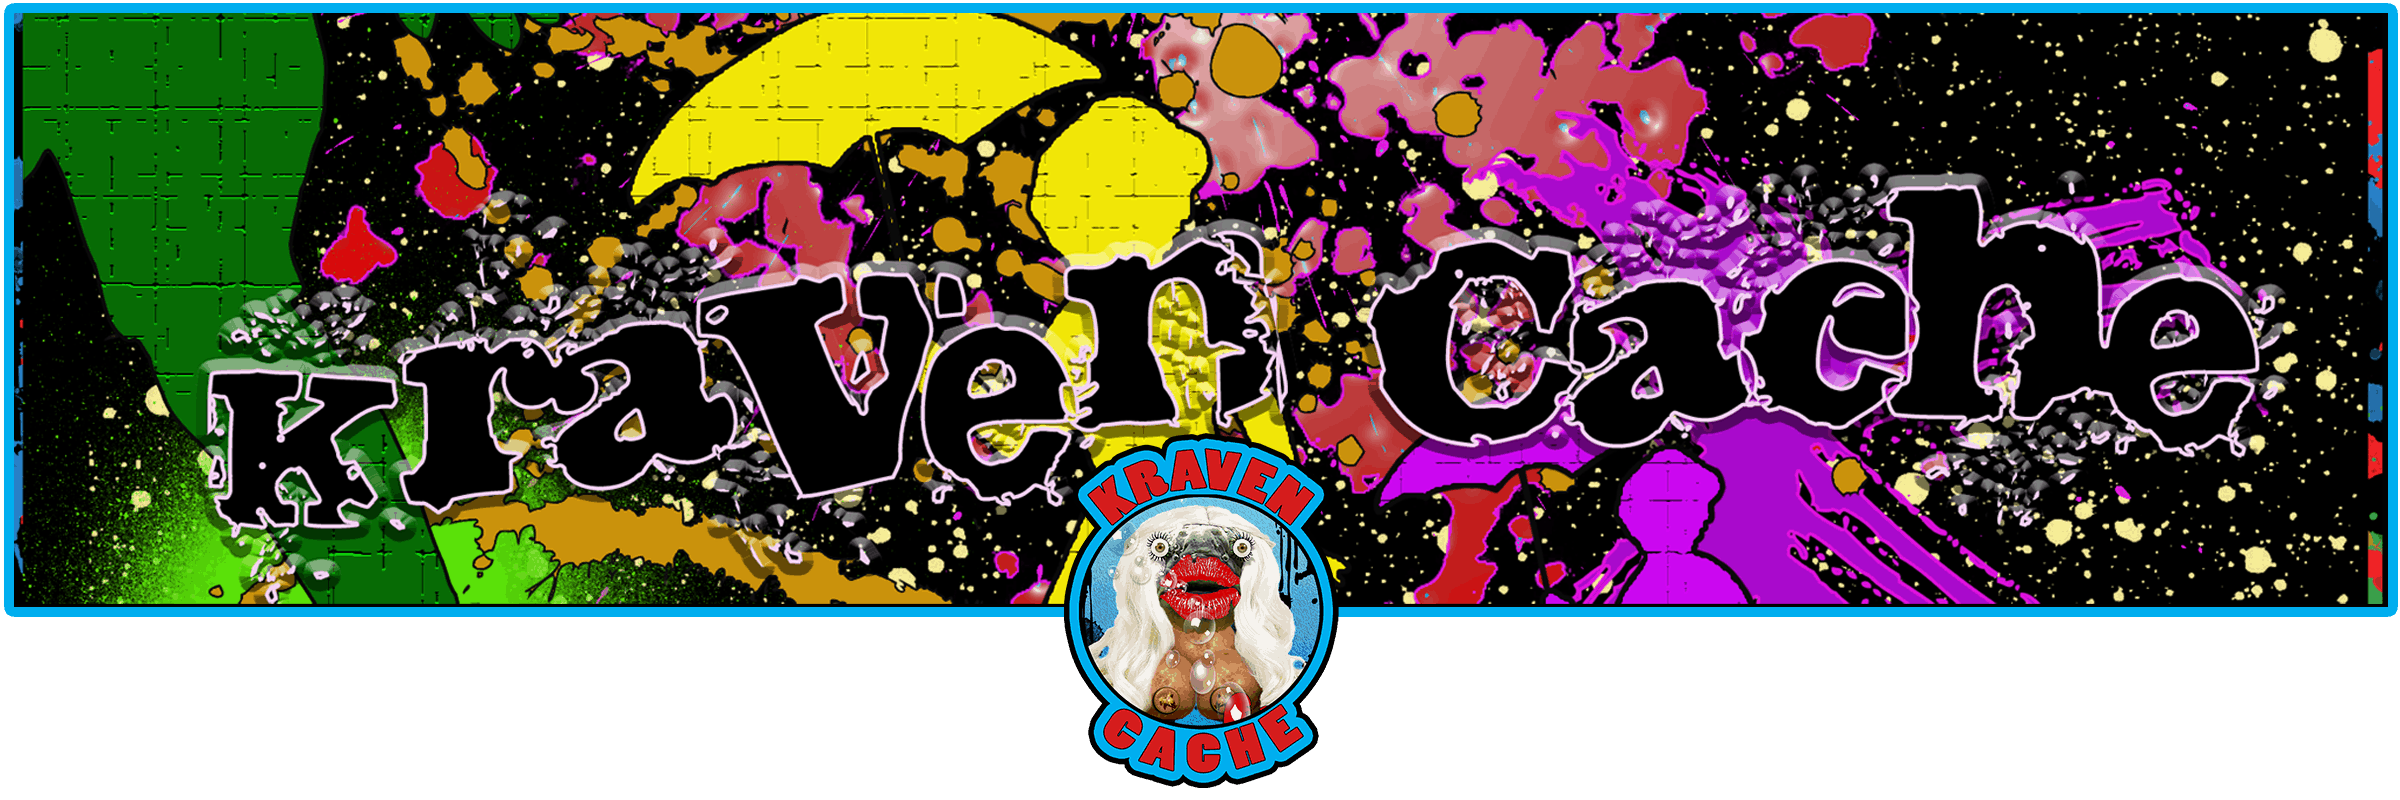 Kraven Cache website header